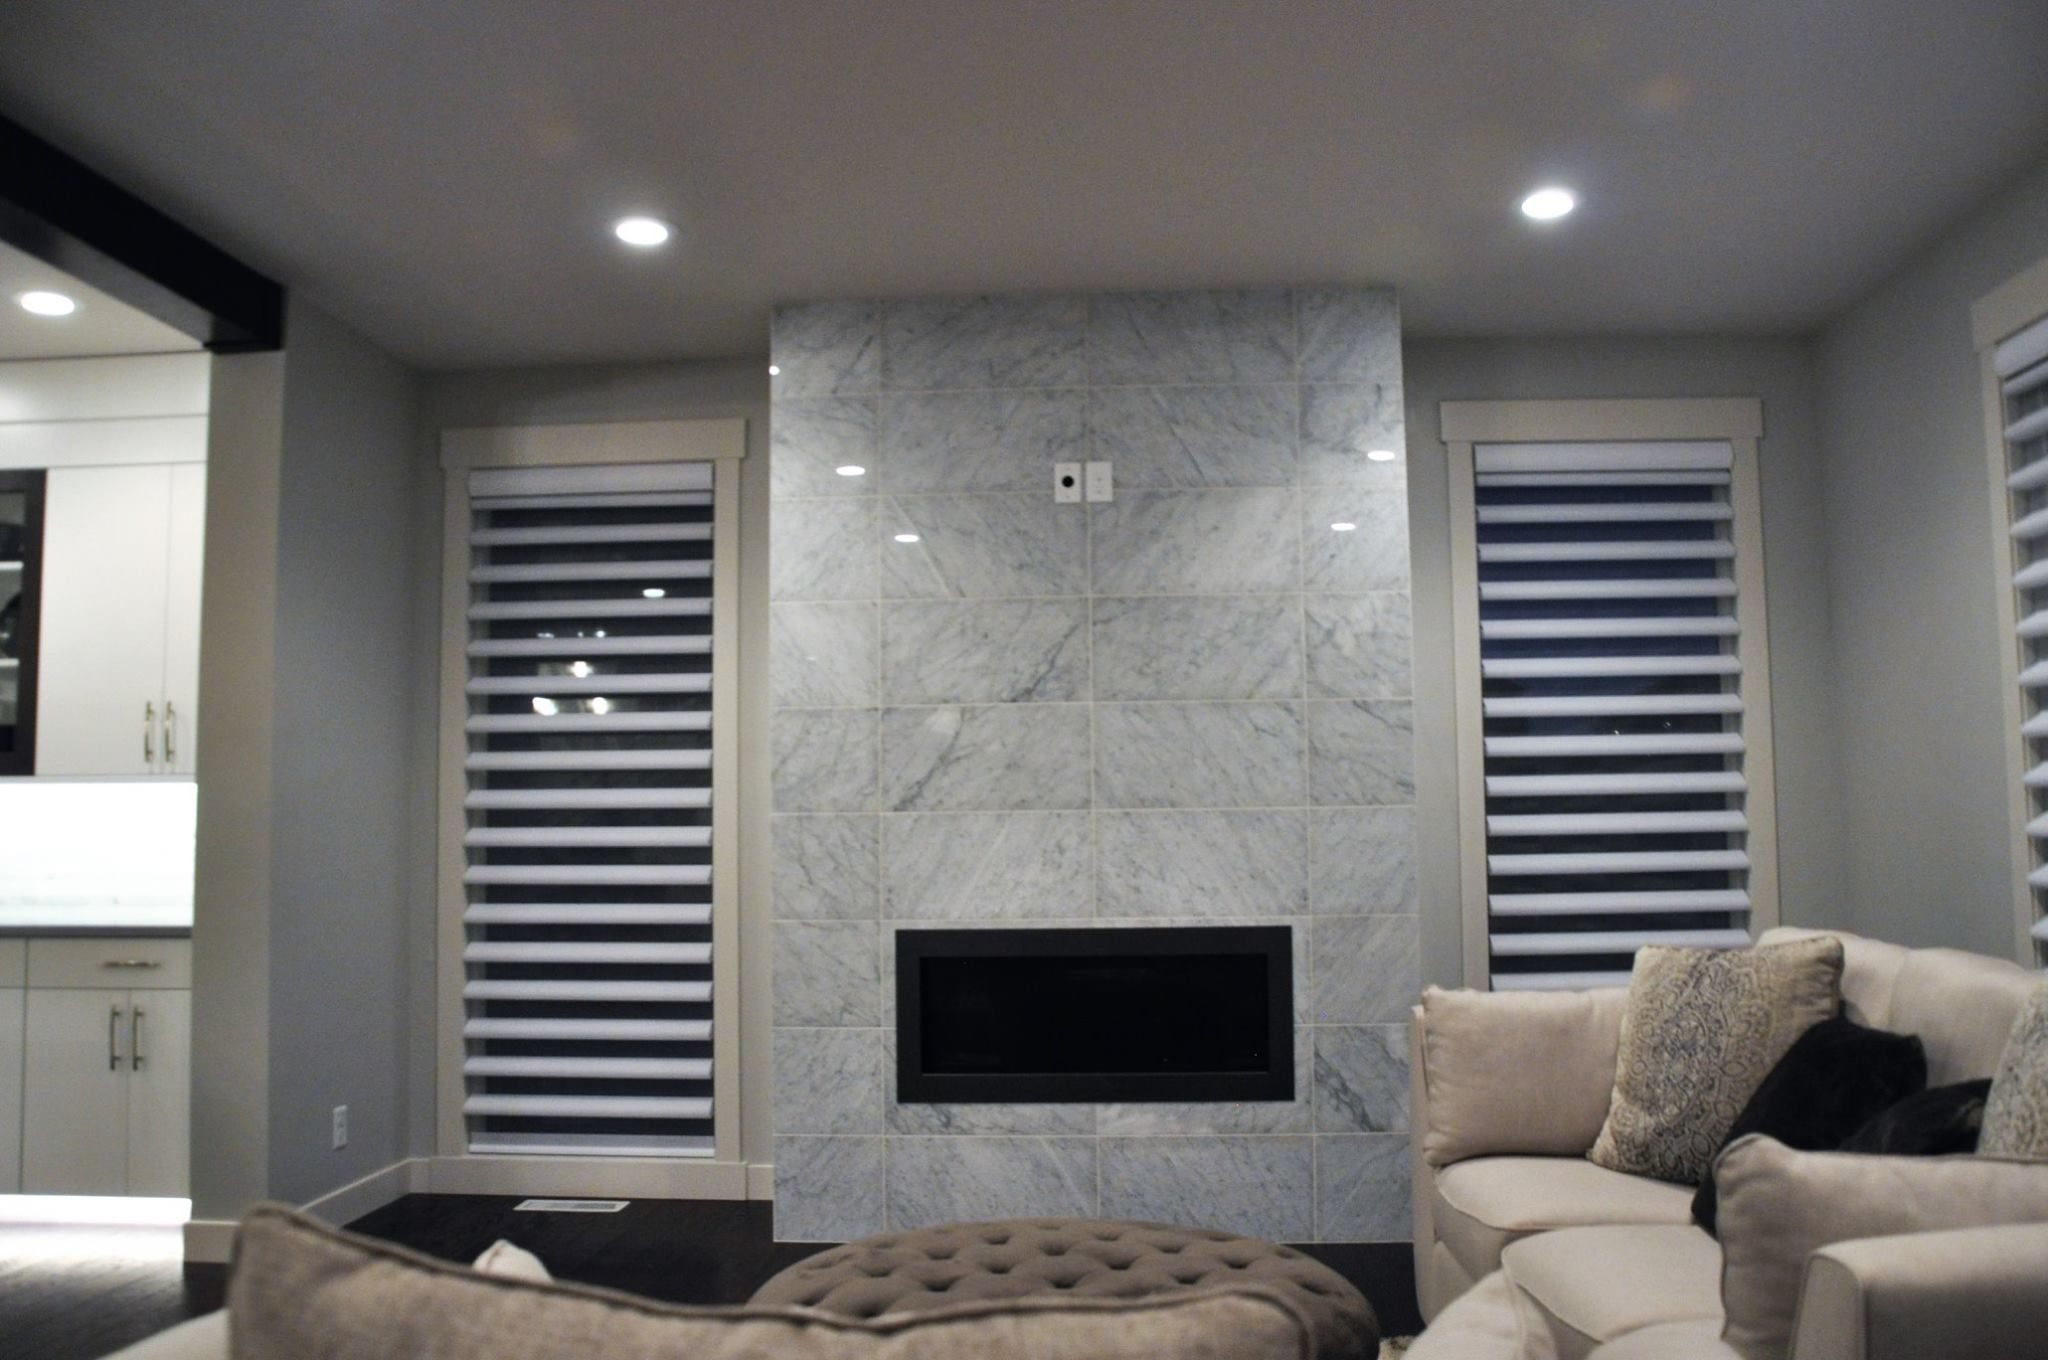 Beautiful floor to ceiling marble fireplace ready to warm